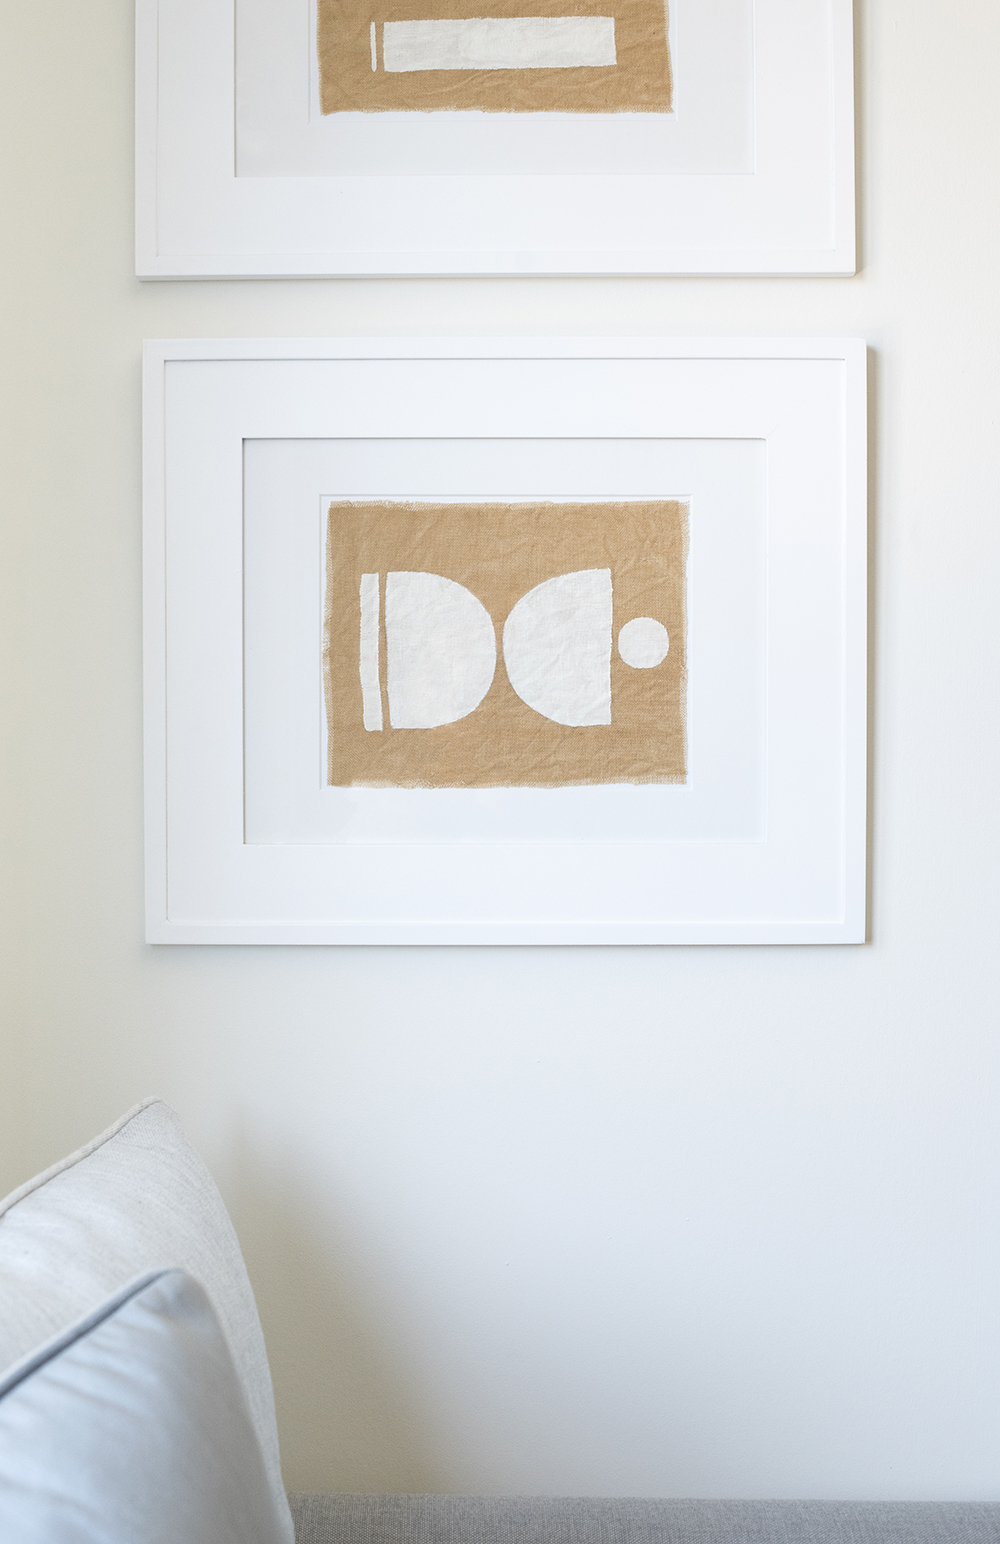 Textile Graphic Art DIY - roomfortuesday.com